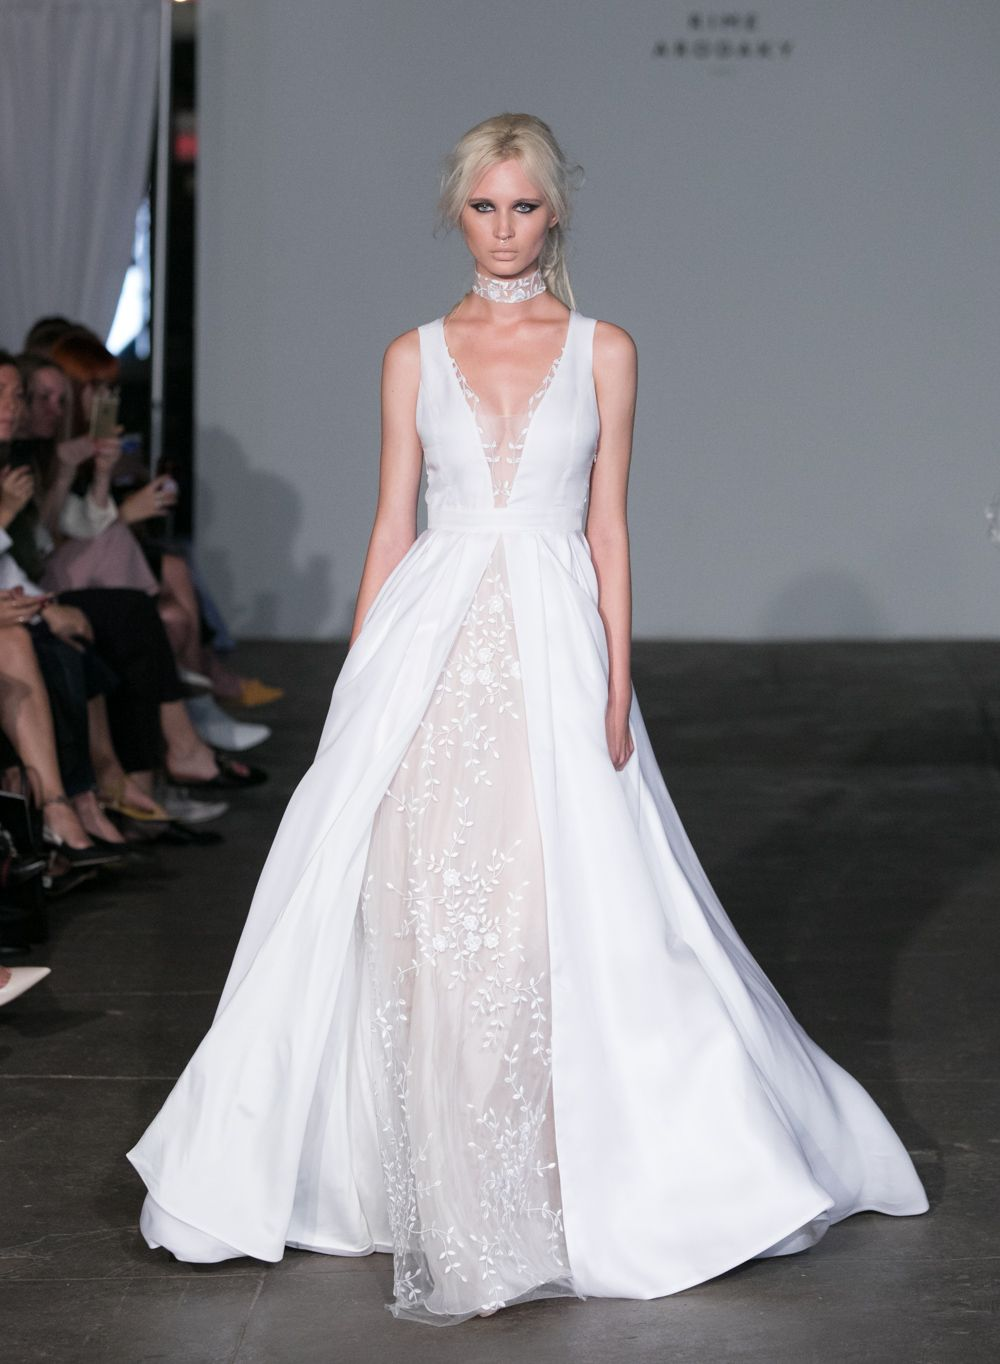 new york bridal fashion week is in full swing, and i'm bringing you